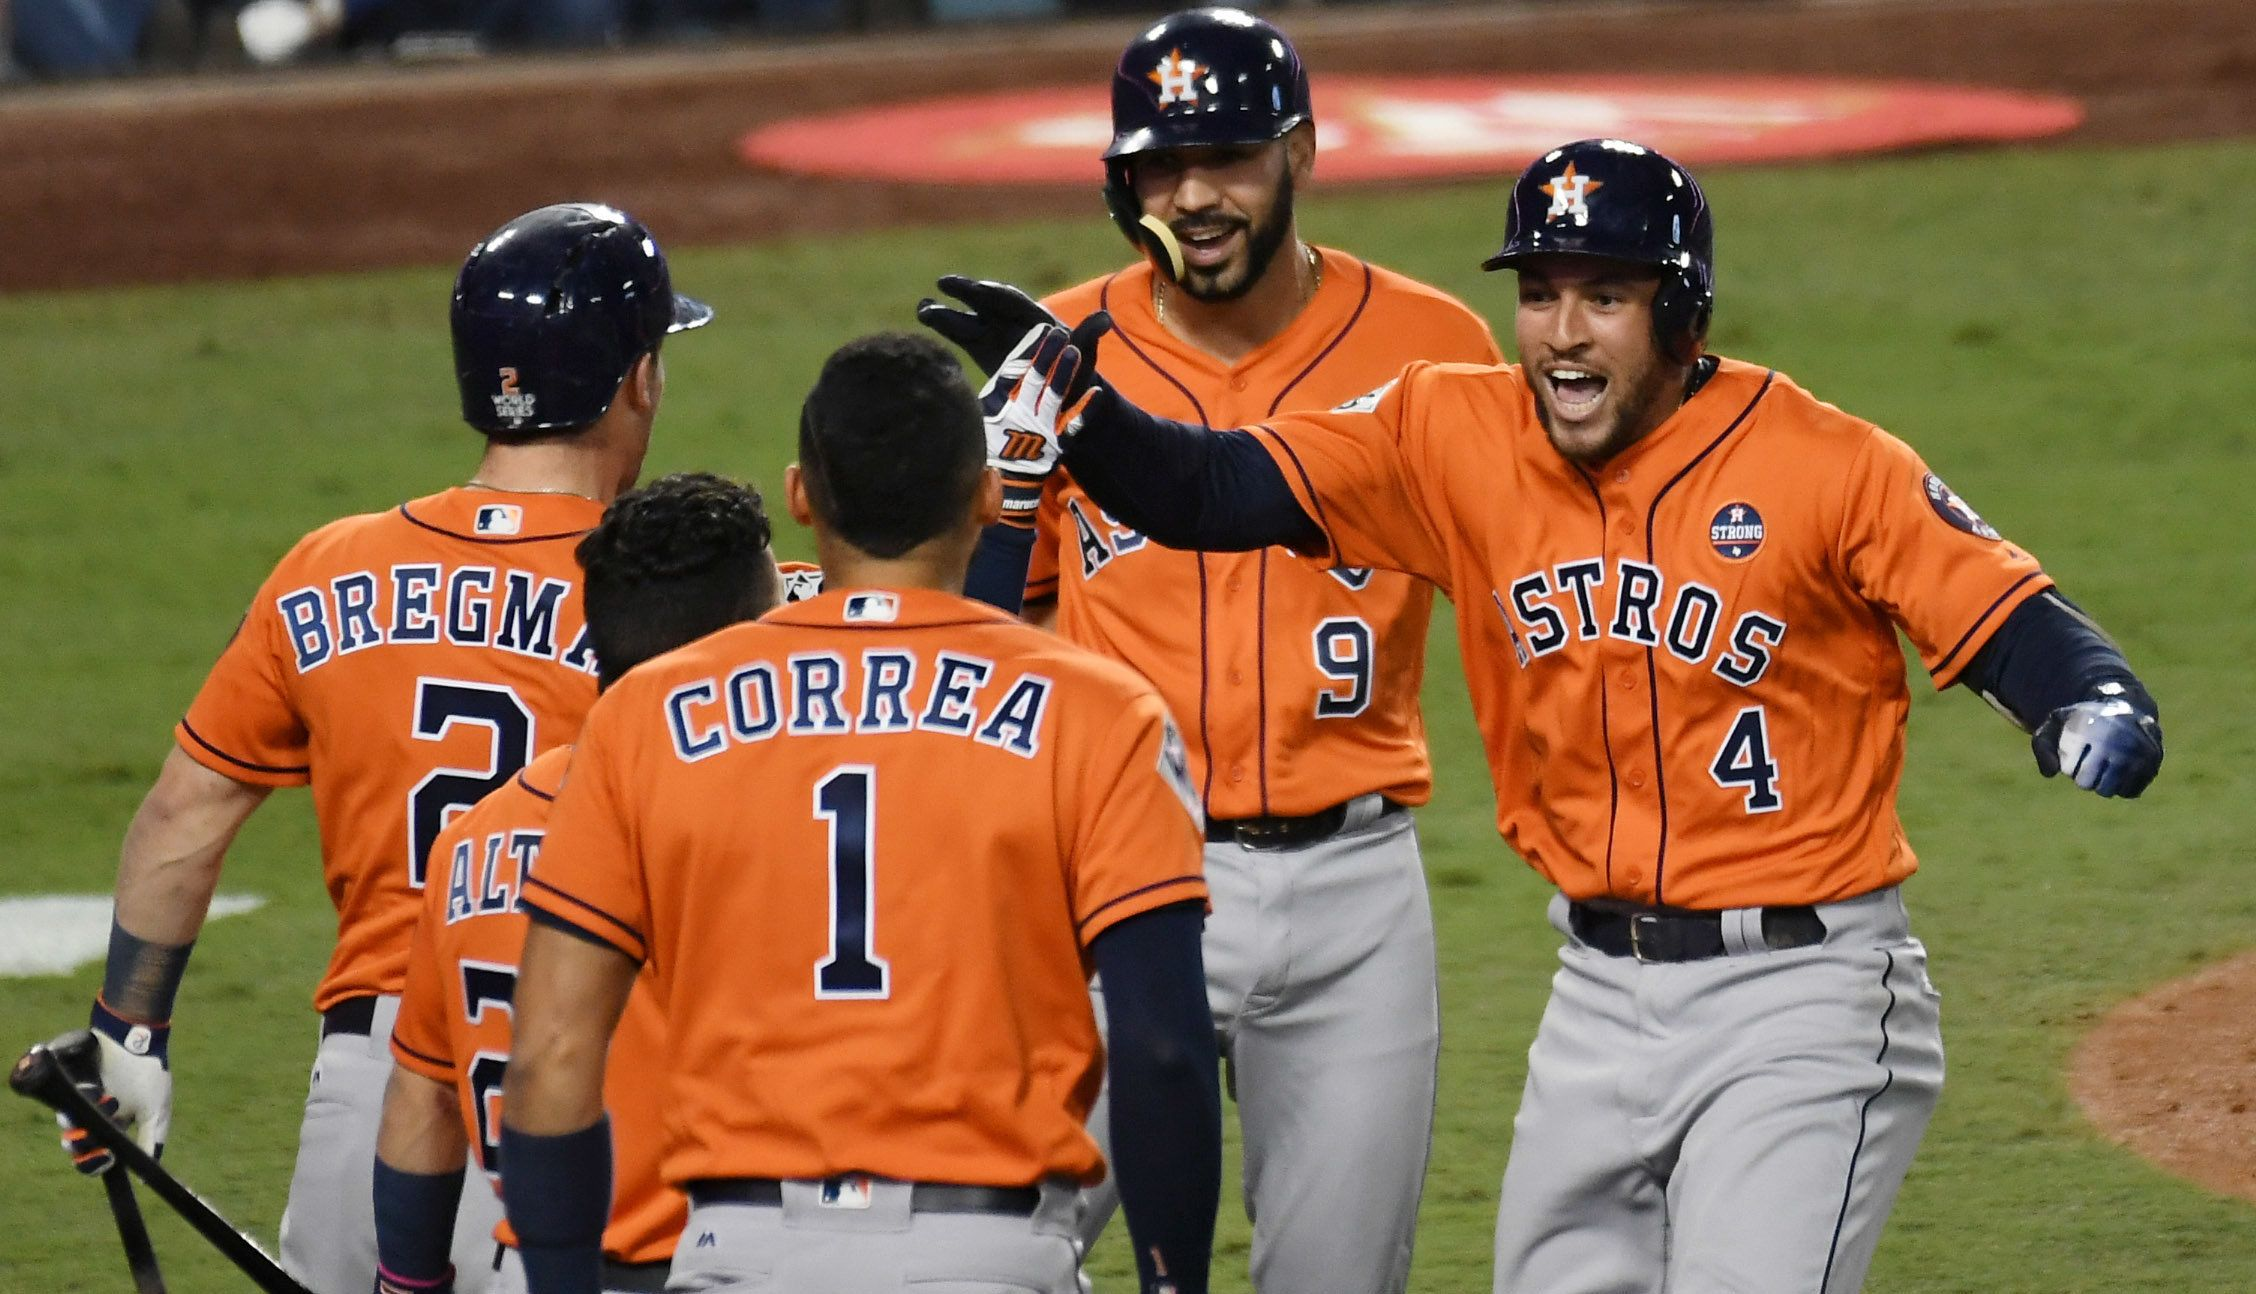 Nov 1, 2017; Los Angeles, CA, USA; Houston Astros center fielder George Springer (4) celebrates with left fielder Marwin Gonzalez (9) and third baseman Alex Bregman (2) and shortstop Carlos Correa (1) after scoring on his two run home run against the Los Angeles Dodgers in the second inning in game seven of the 2017 World Series at Dodger Stadium. Mandatory Credit: Richard Mackson-USA TODAY Sports